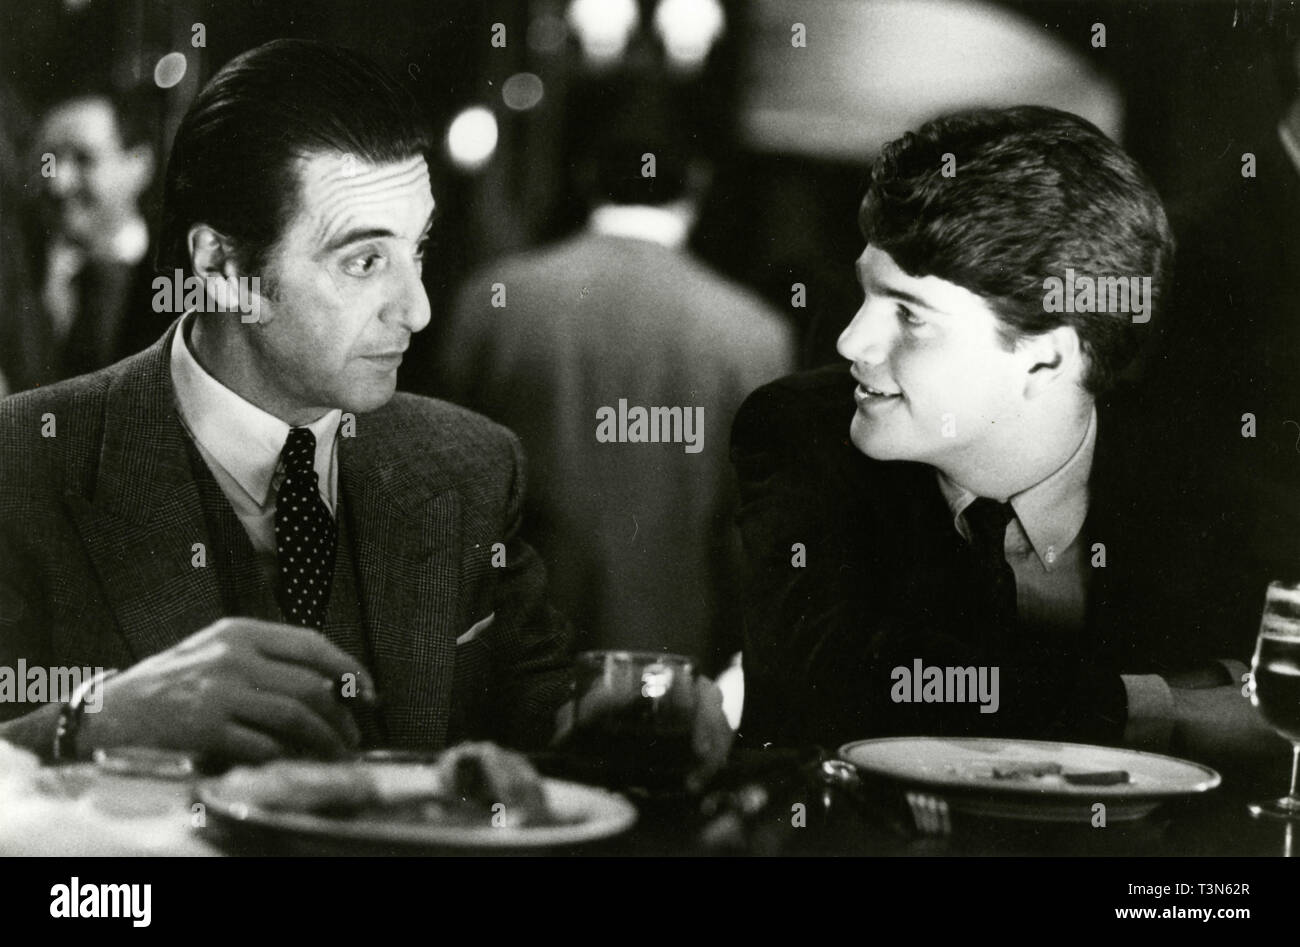 Actors Al Pacino And Chris O Donnell In The Movie Scent Of A Woman 1992 Stock Photo Alamy